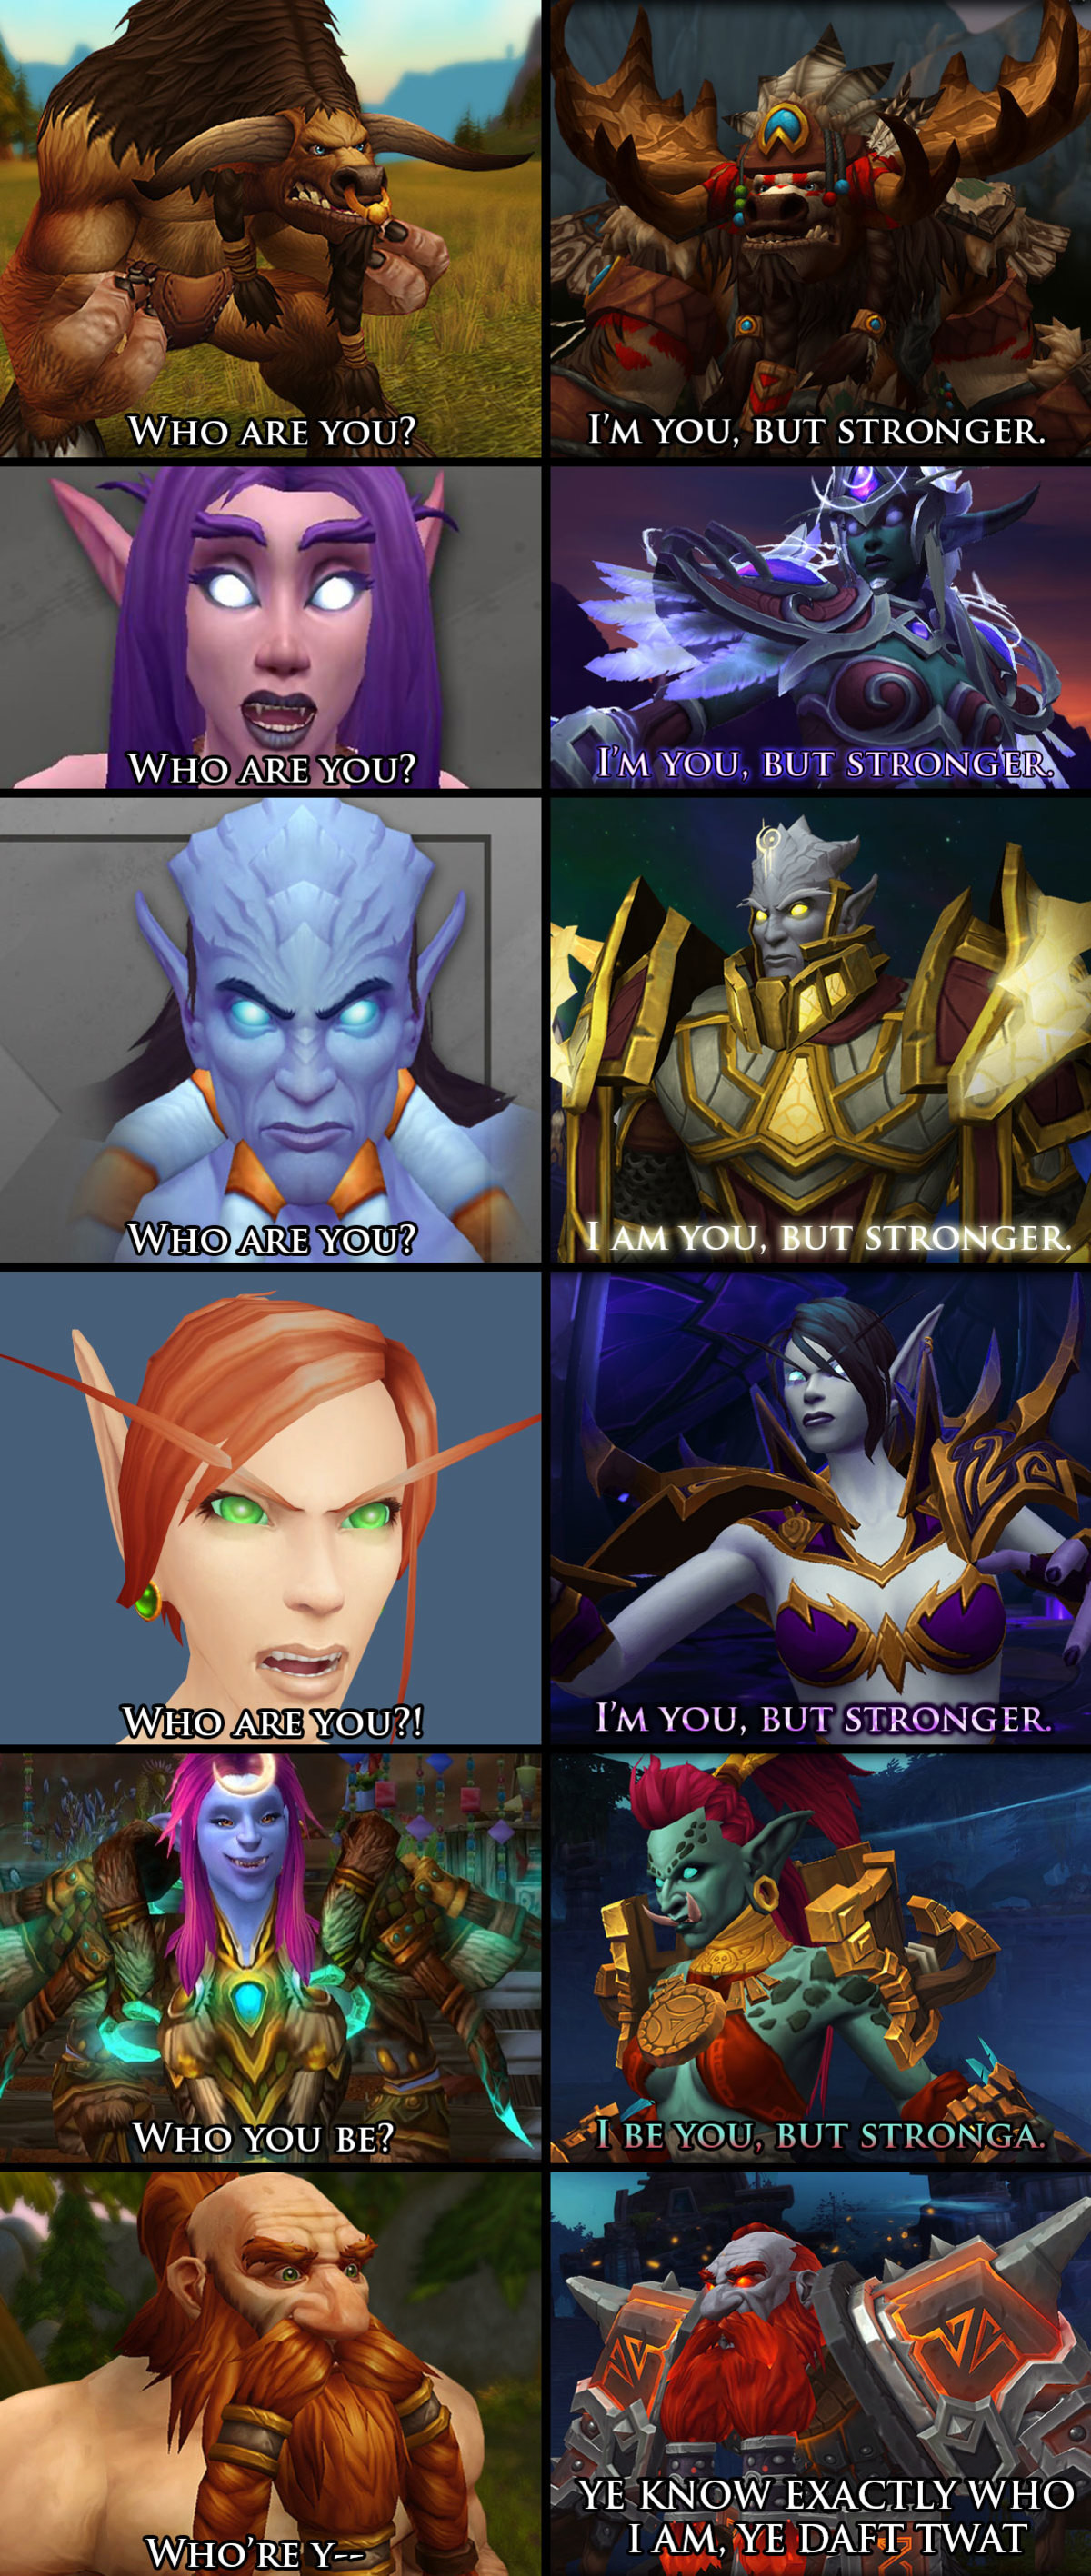 the new allied races. .. >tfw the Alliance is so unpopular in lore that they literally have to build new recruits